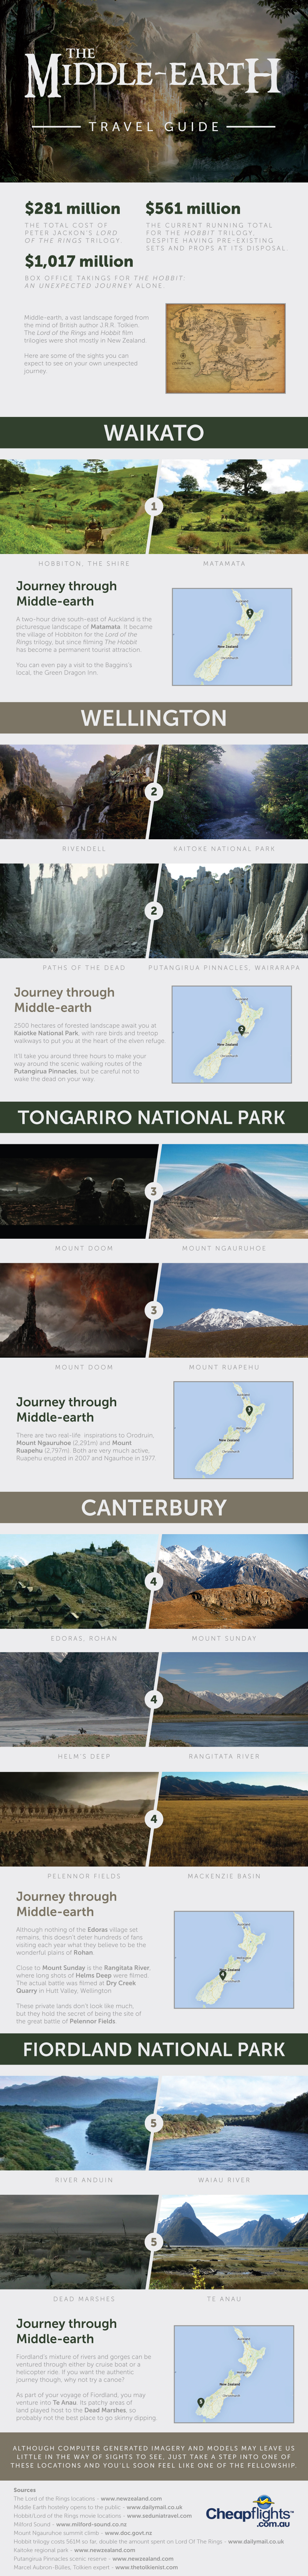 The Middle-earth Travel Guide [infographic] (c) Cheapflights.com.au